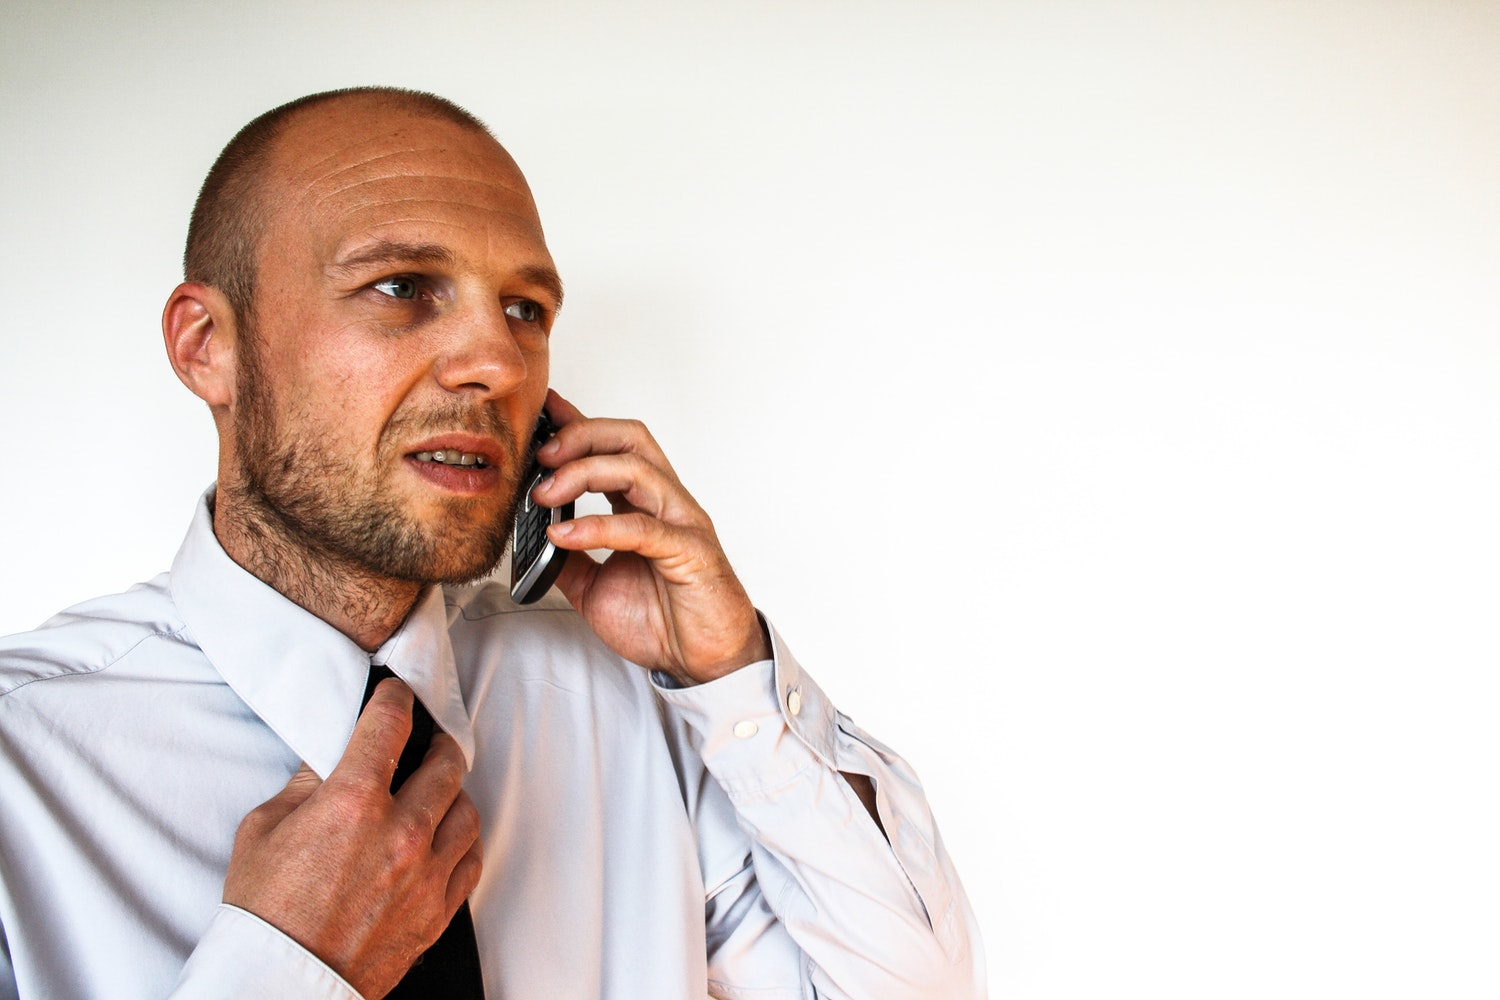 Is Stress Keeping You From Enjoying Being a Business Owner?